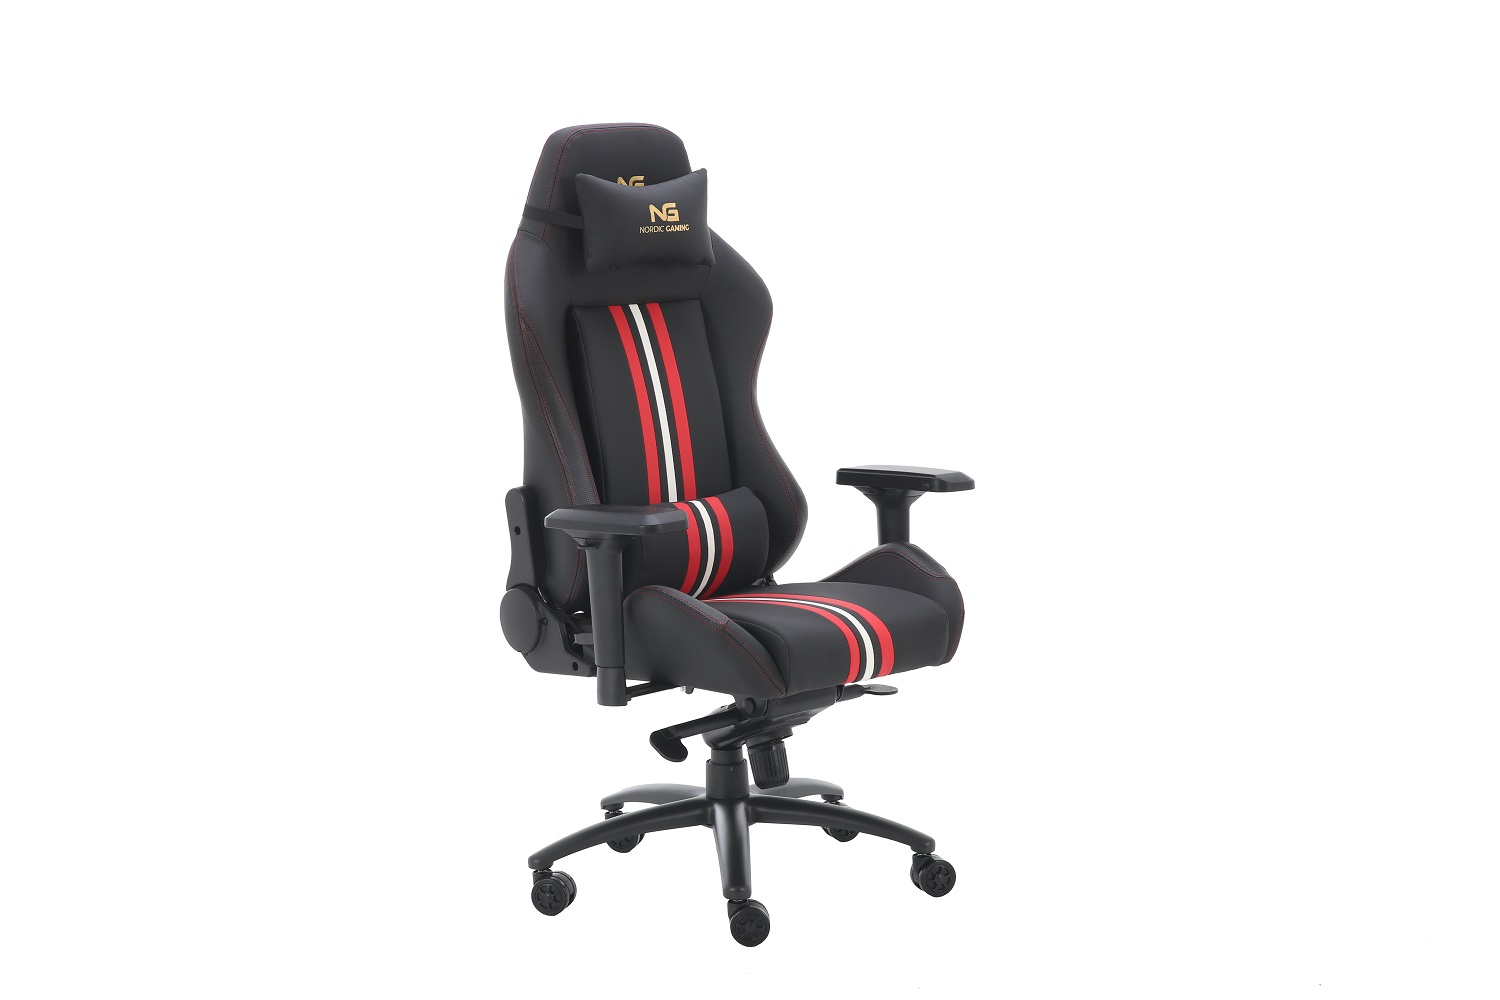 Nordic Gaming Gold Premium Gaming Chair Black